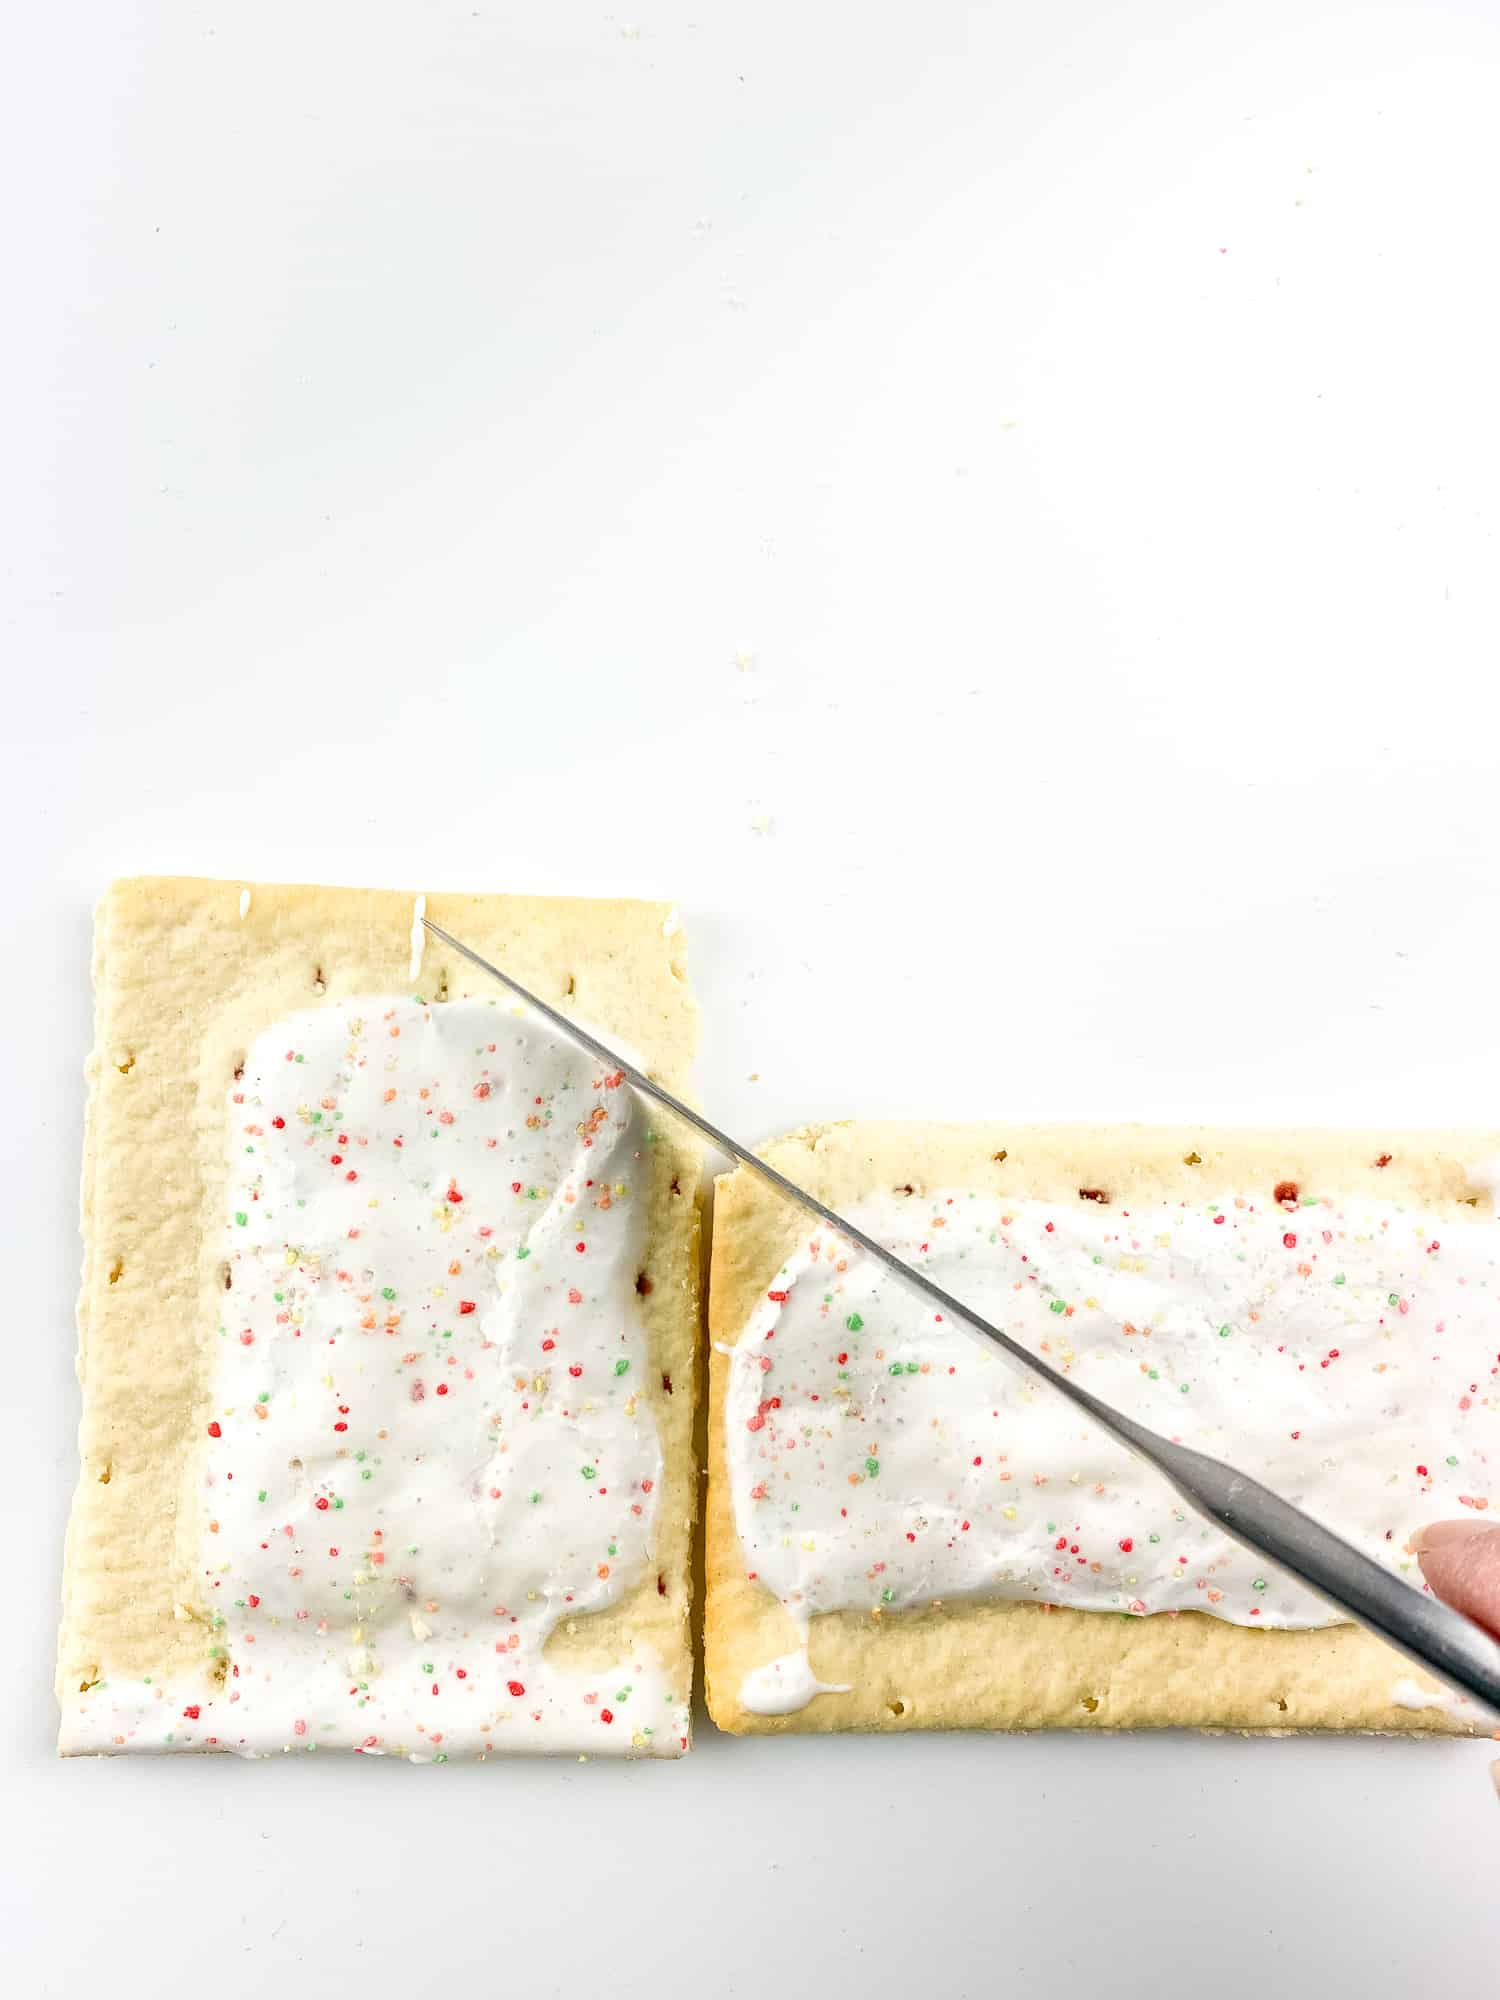 L-shape pop-tarts cutting guide for the roof.